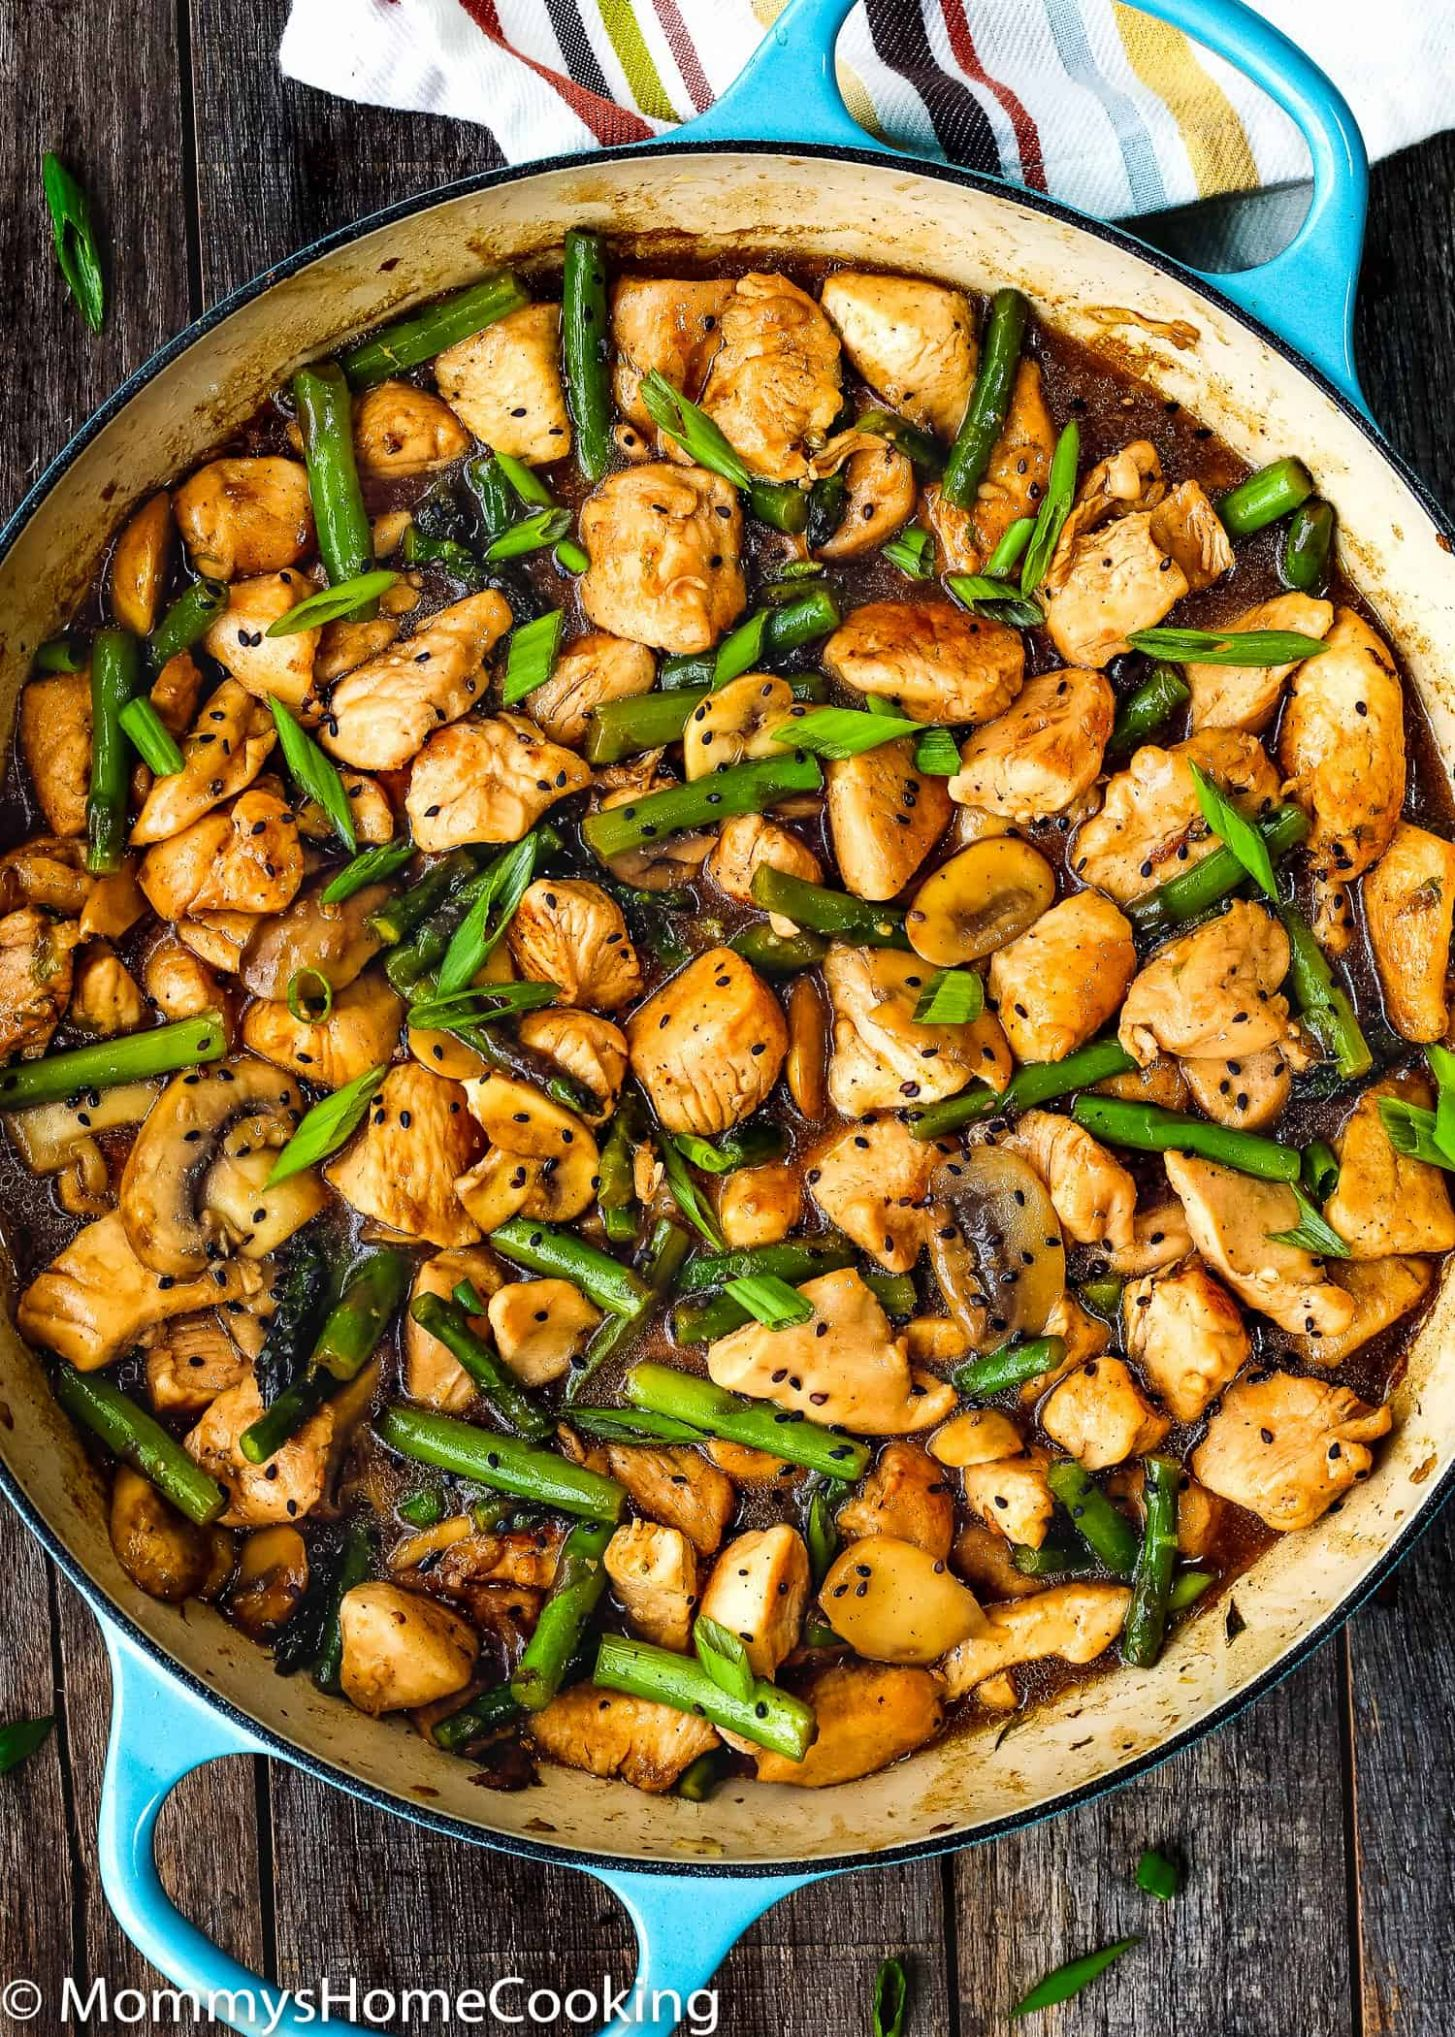 Easy Healthy Chicken and Asparagus Skillet - Recipes Chicken Quick